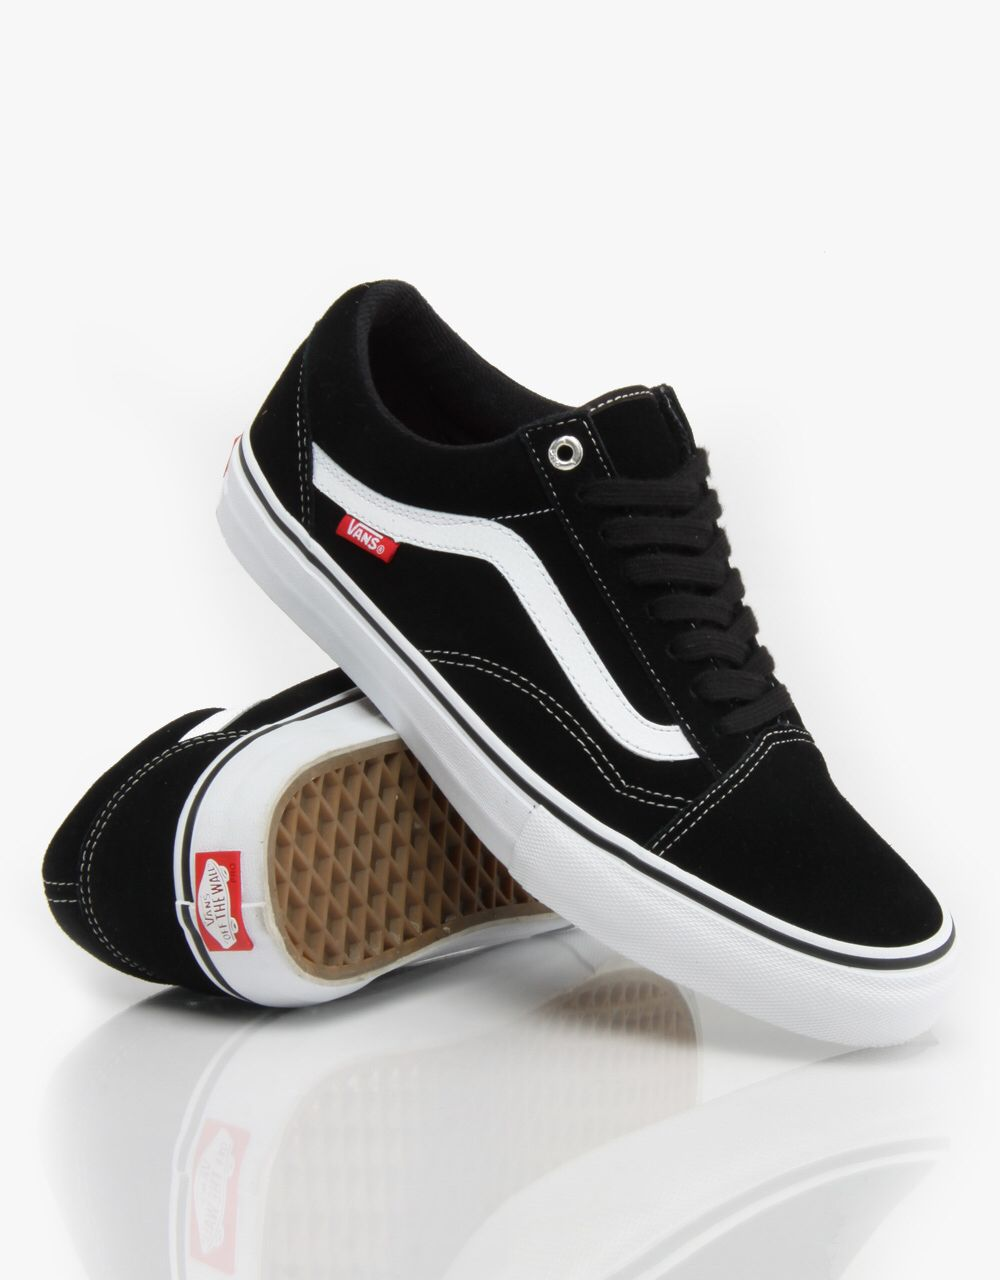 Vans old skool pro with black laces